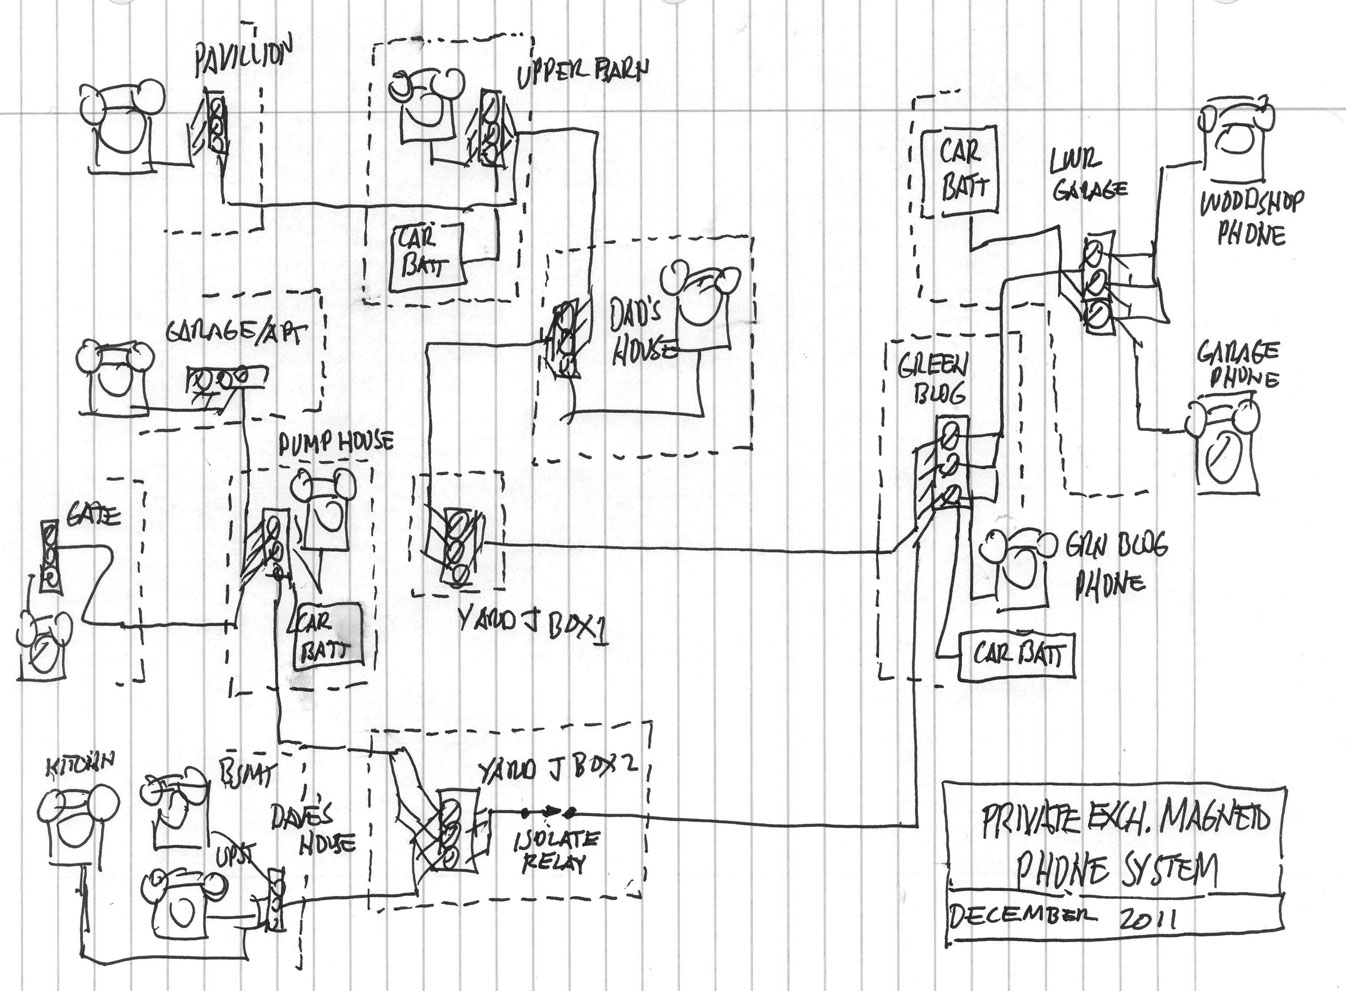 hand crank phone wiring diagram